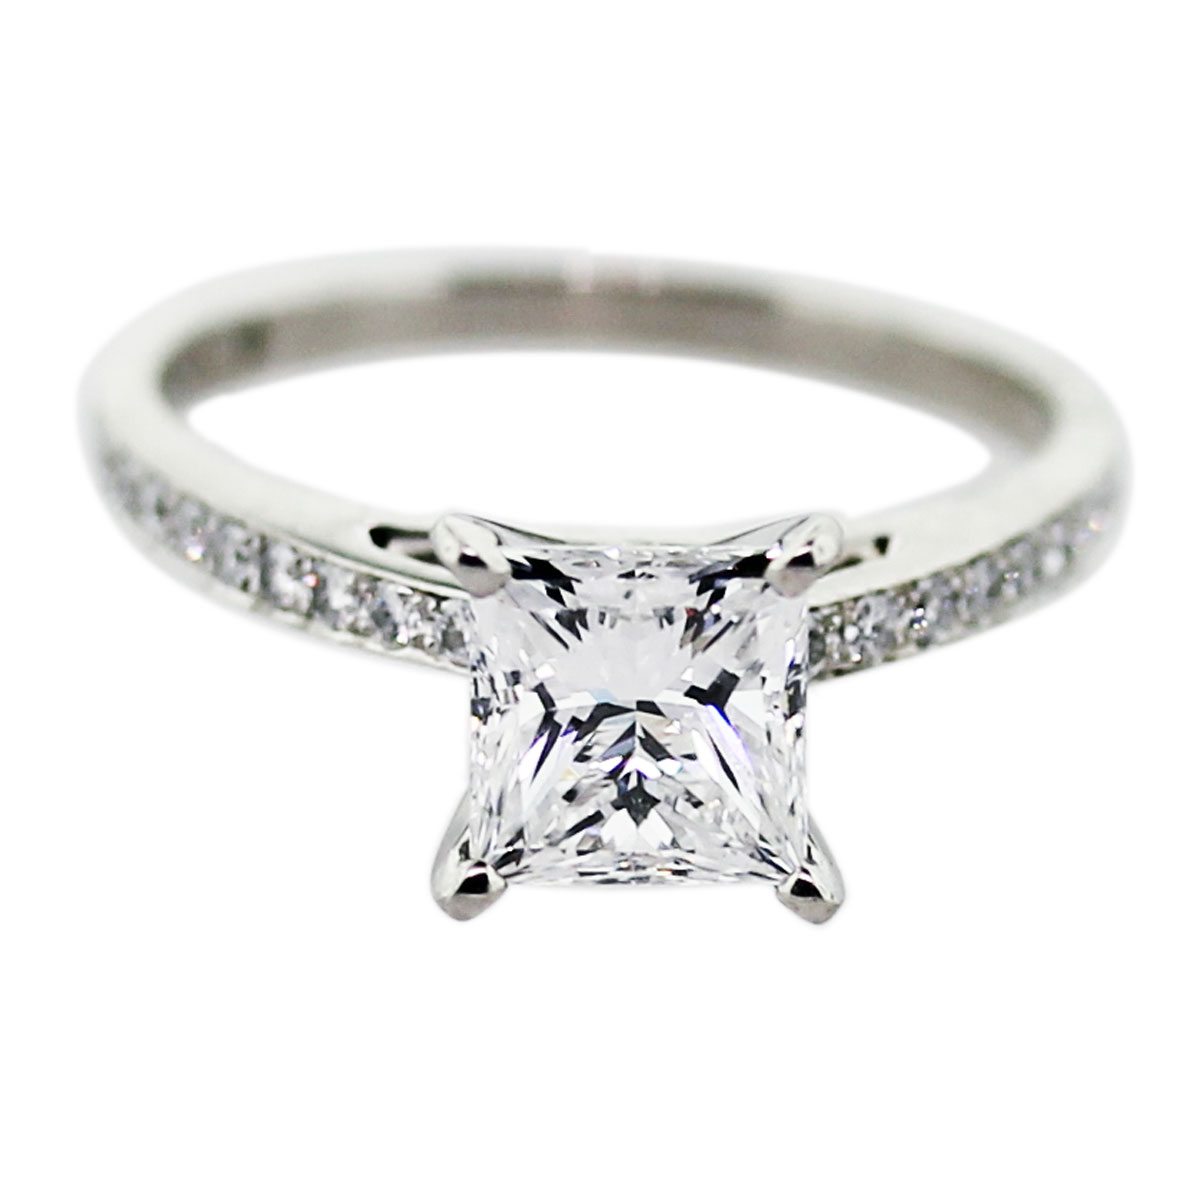 1.51 Carat Diamond Ring